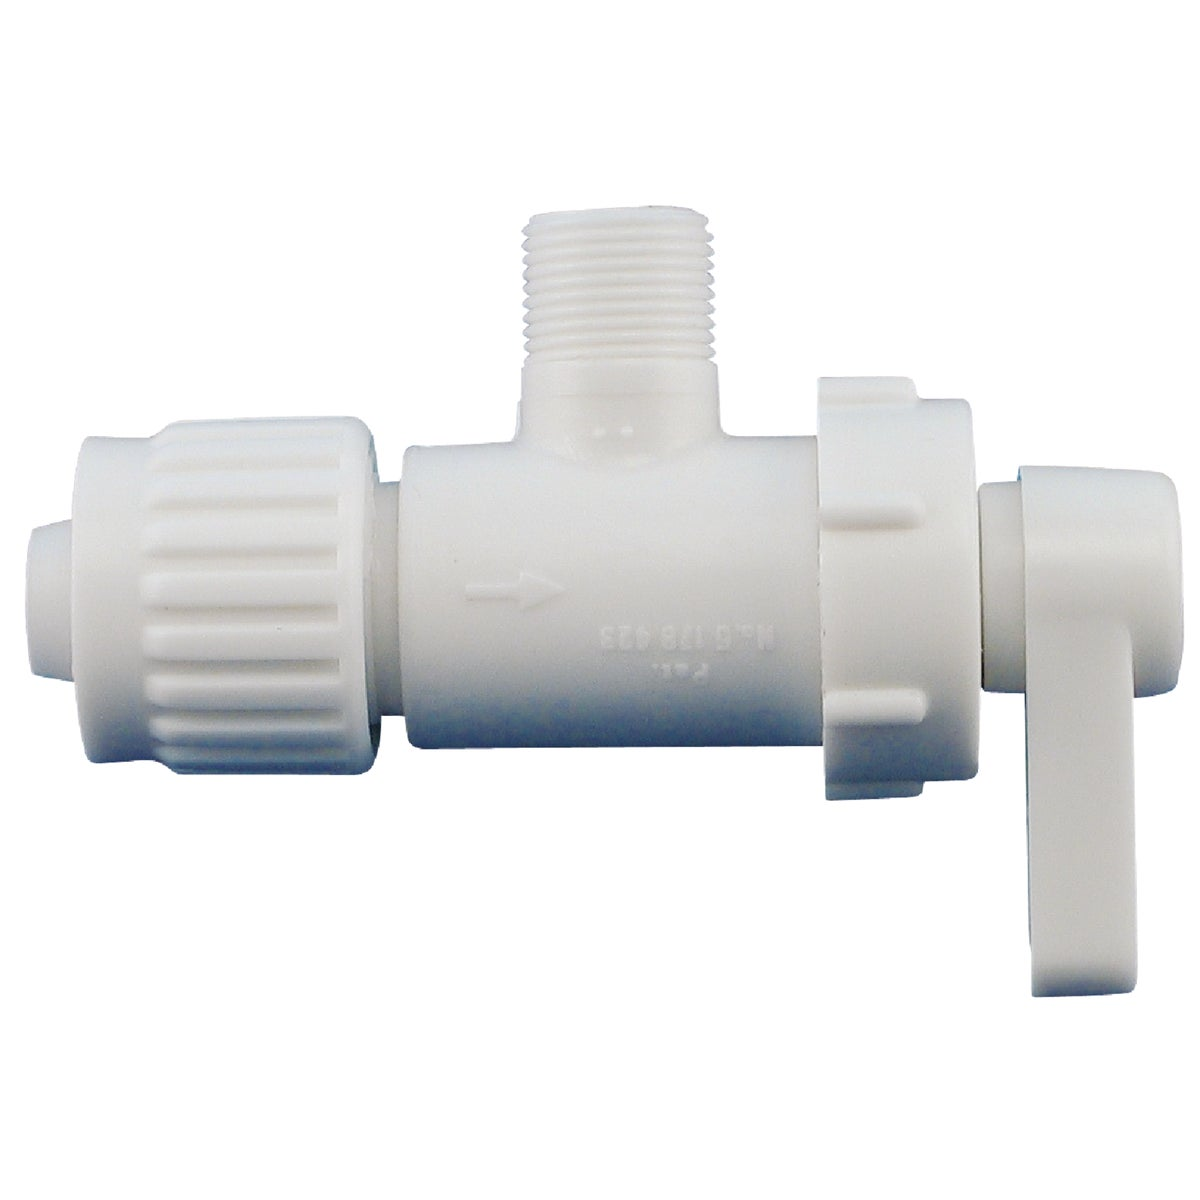 Flair It 1/2X3/8 ANGLE VALVE 16893